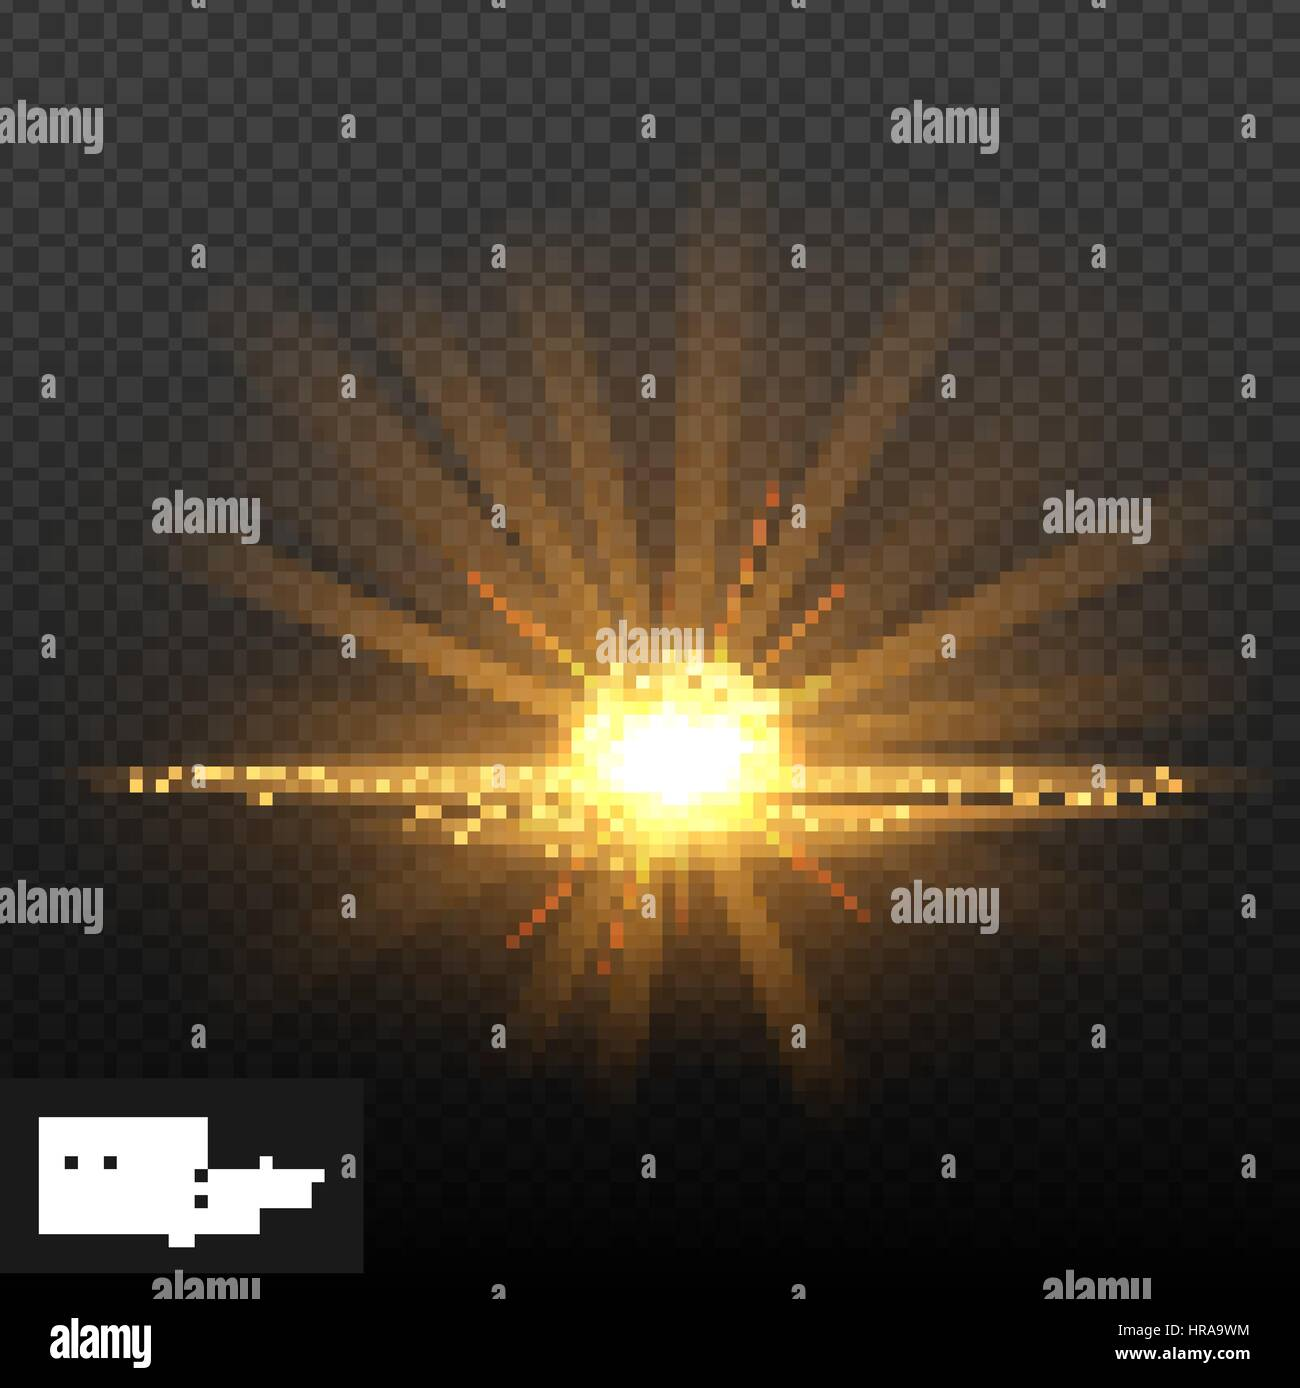 Bright shining sun/star. Isolated on black background. Sunrise over the water. Vector illustration, eps 10. - Stock Vector